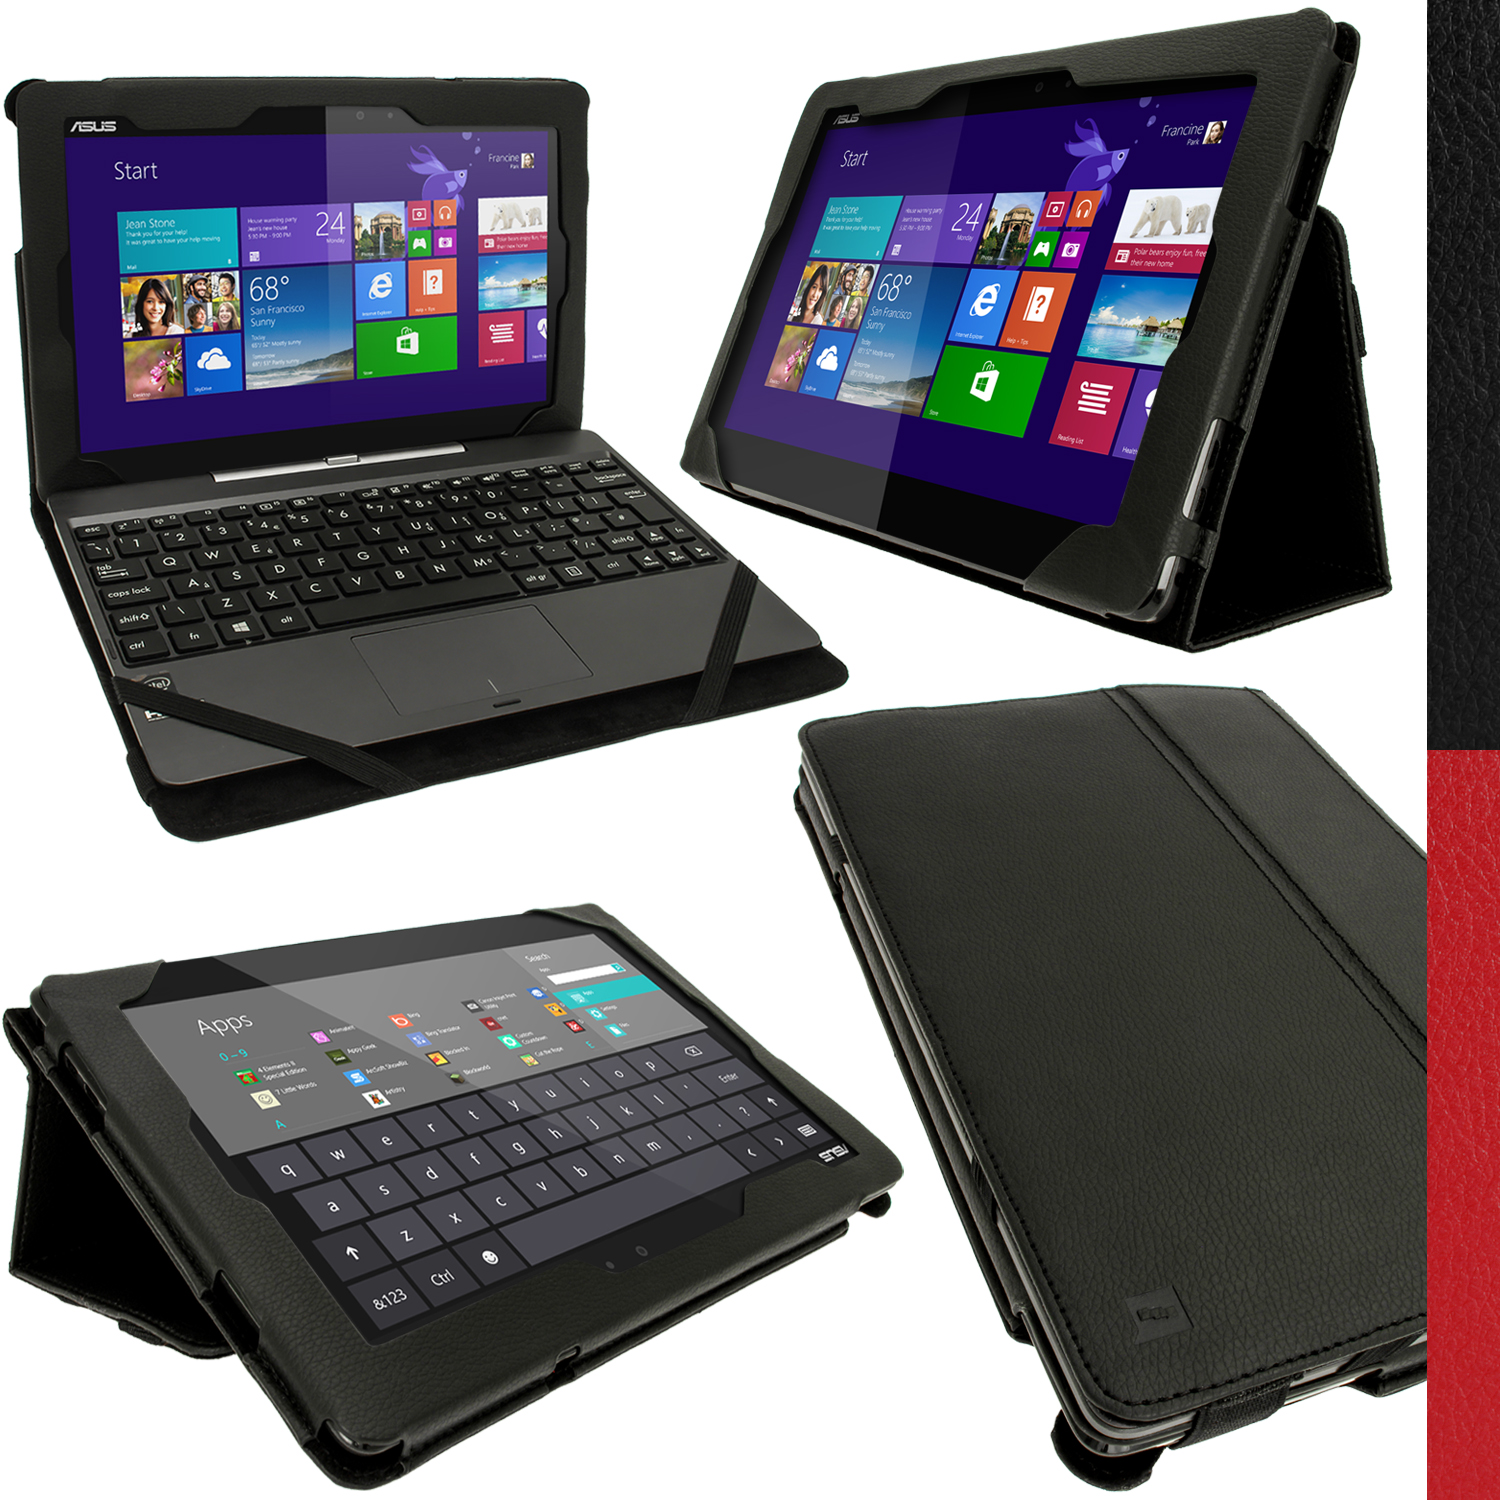 iGadgitz PU Leather Case for Asus Transformer Book T100T Tablet & Keyboard Dock with Sleep/Wake (various colours)